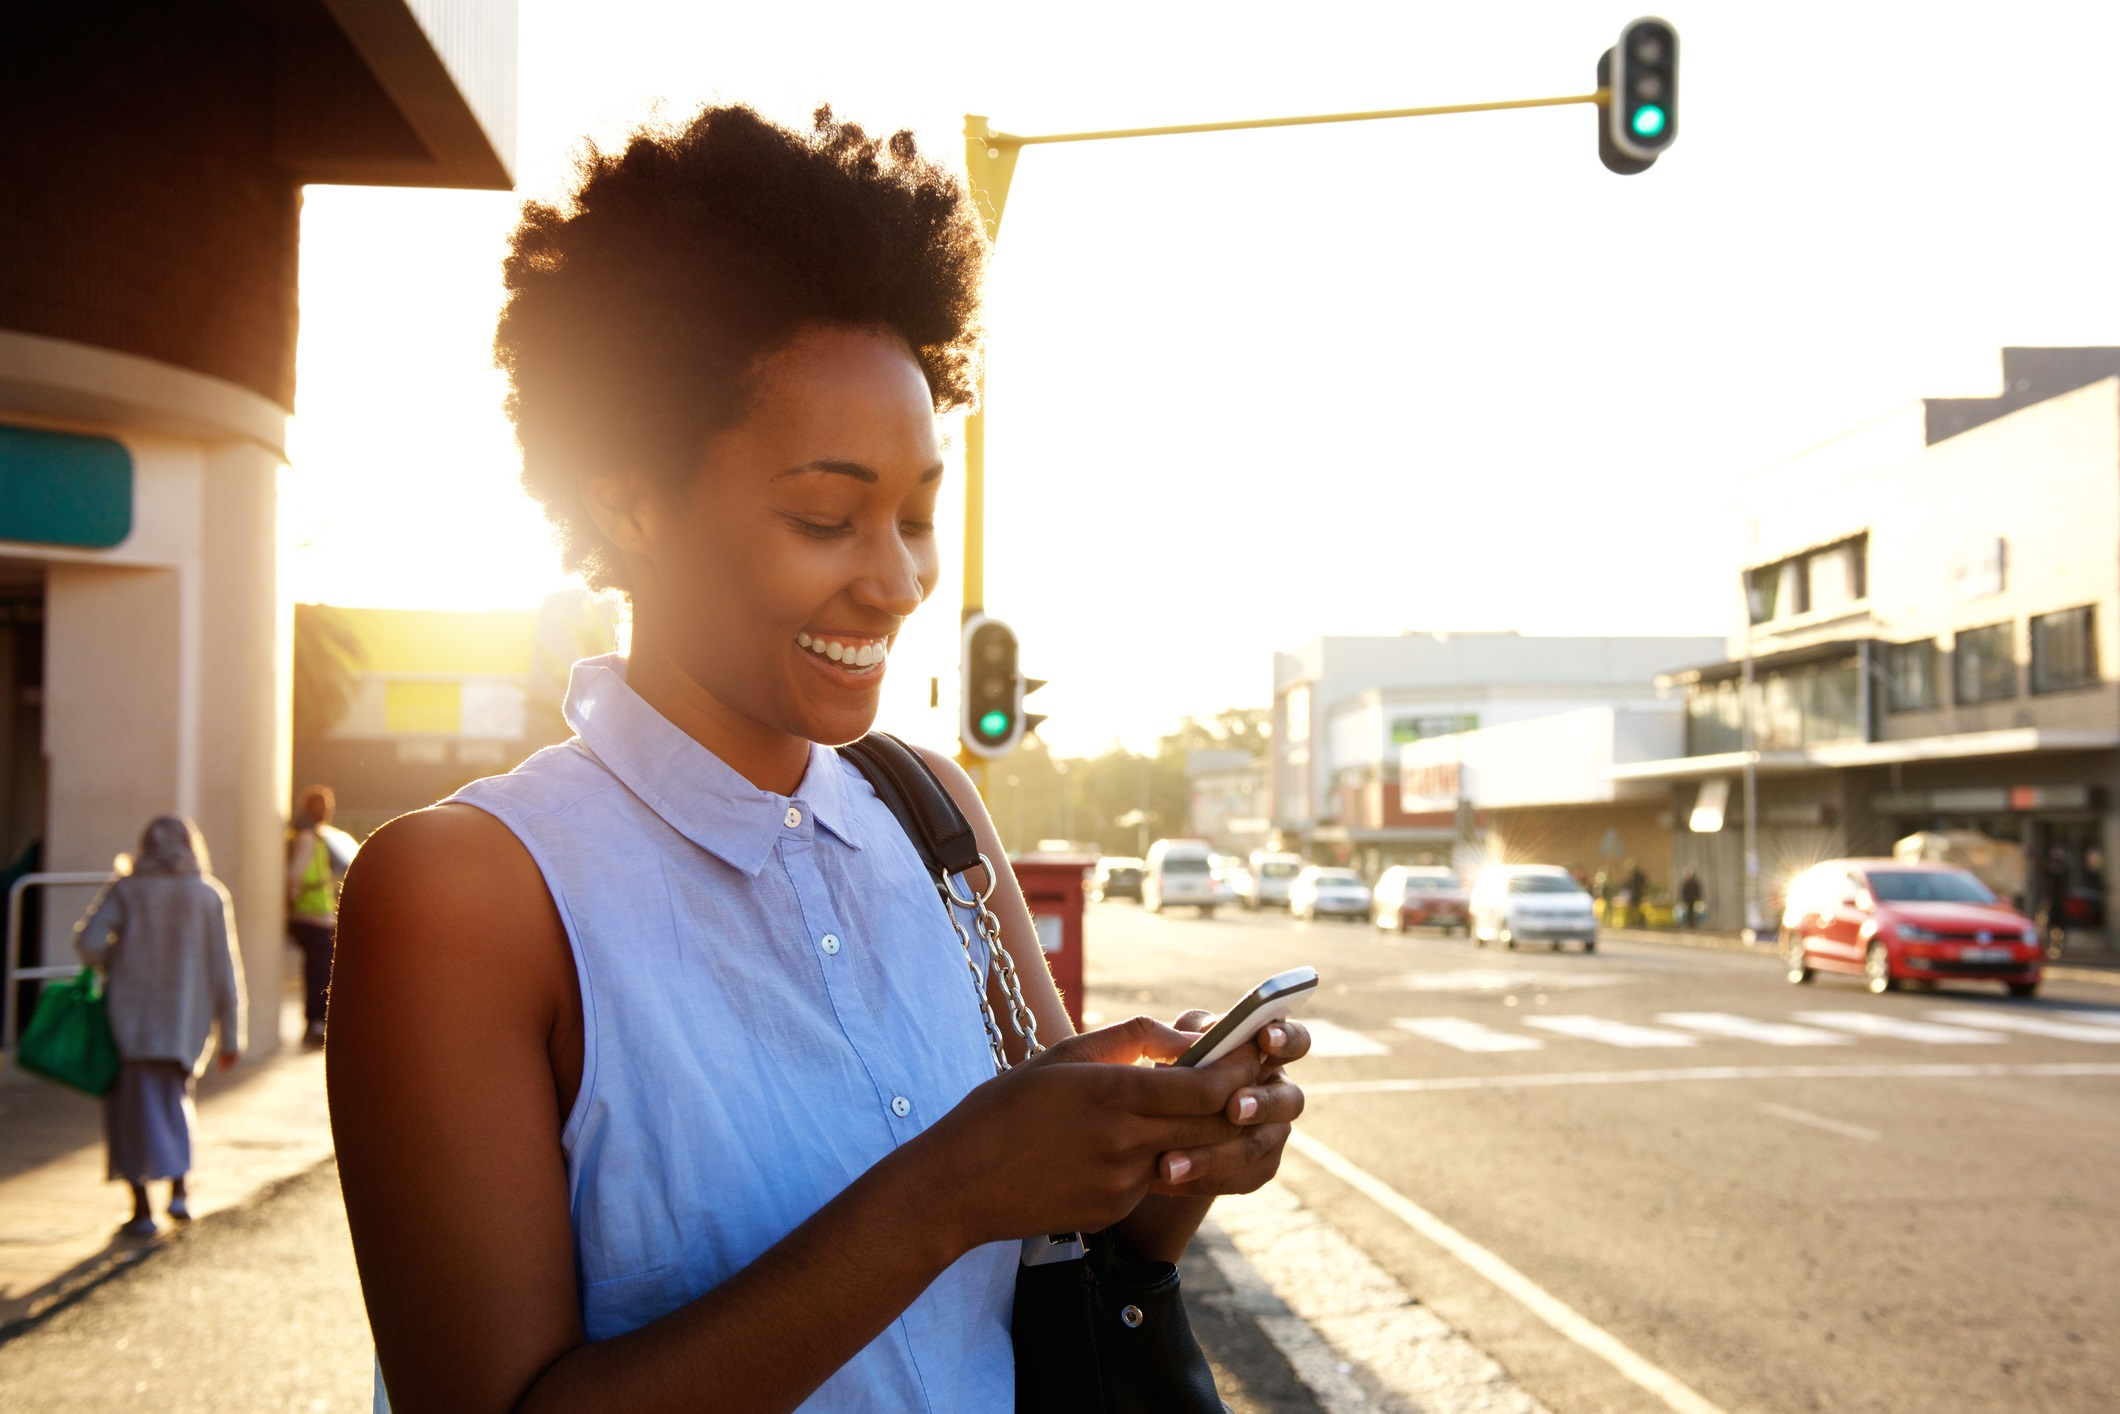 Top 10 Mobile Marketing Trends You Need to Know for 2018